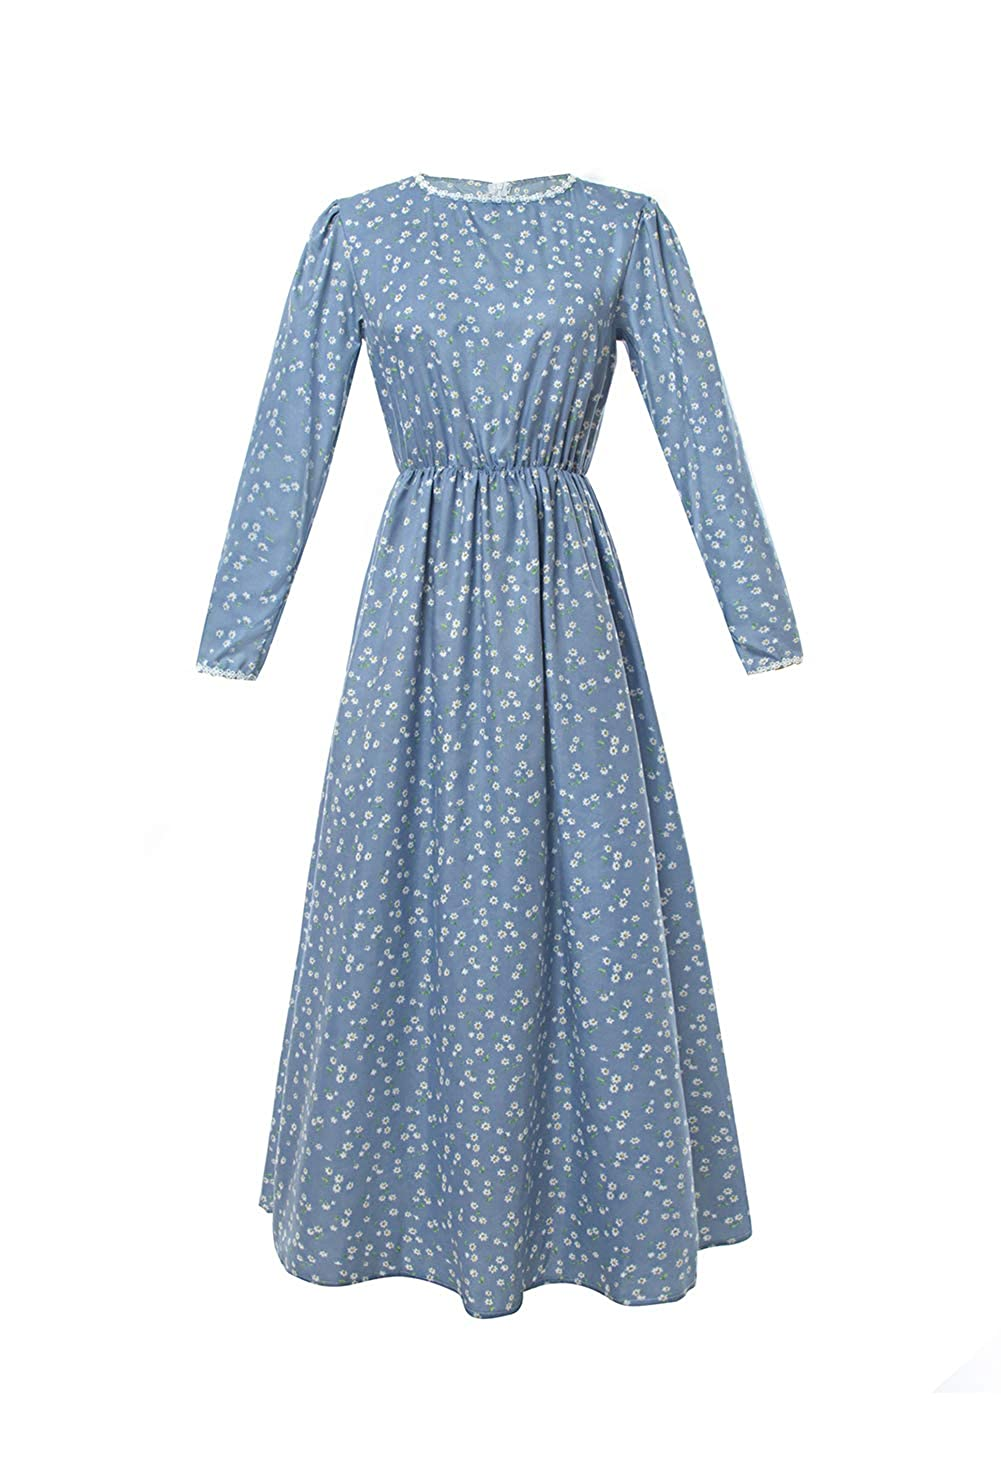 Old Fashioned Dresses | Old Dress Styles 1890-1915 Pioneer Women Costume Floral Prairie Dress Deluxe Colonial Dress Laura Ingalls Costume $35.99 AT vintagedancer.com